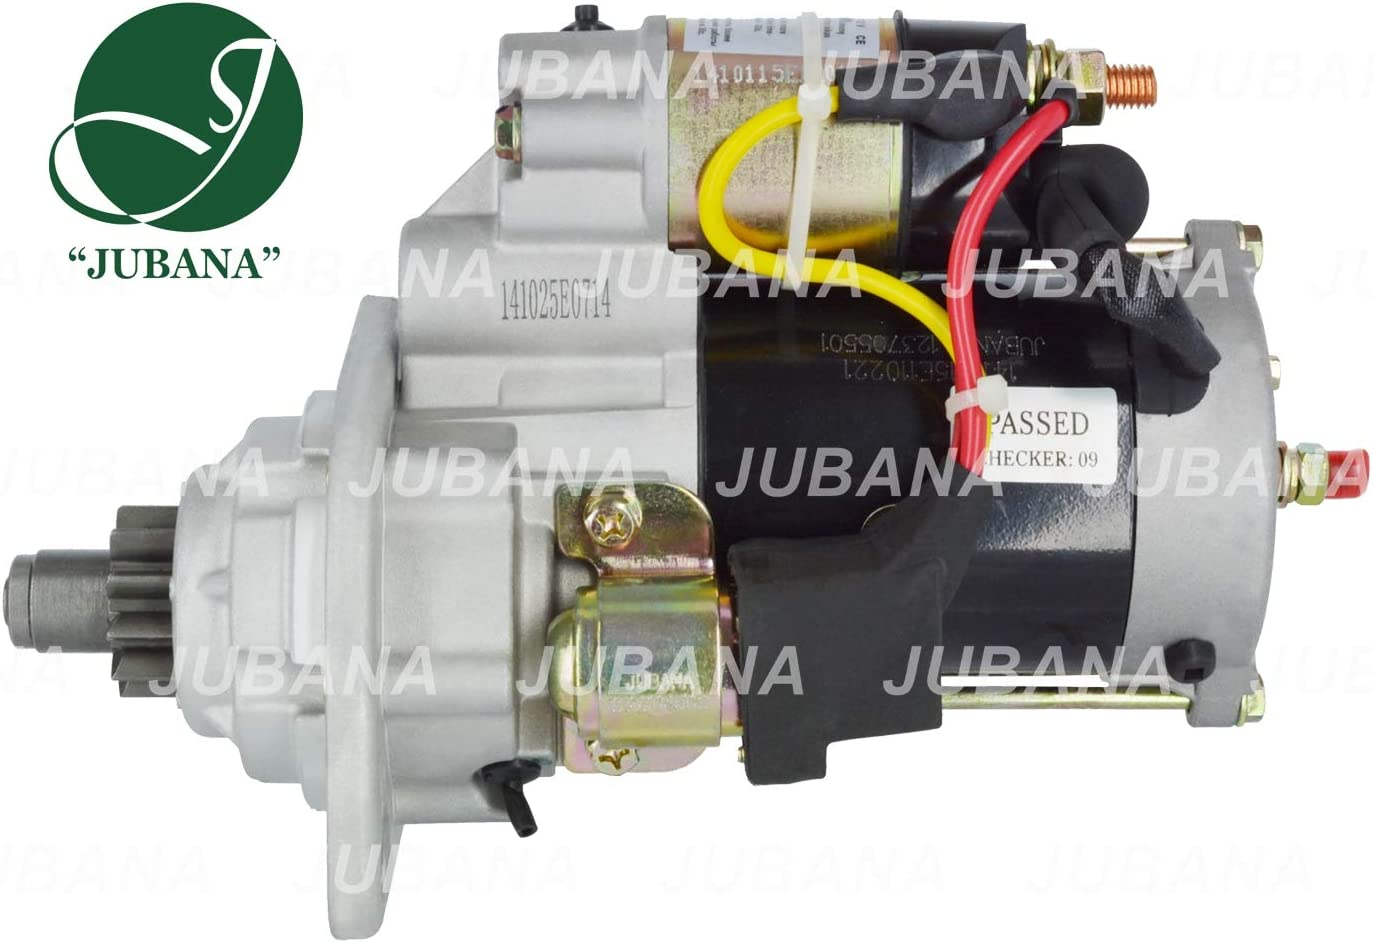 JUBANA 123708503 Starter with Reduction Gear 12V 3,2 kW